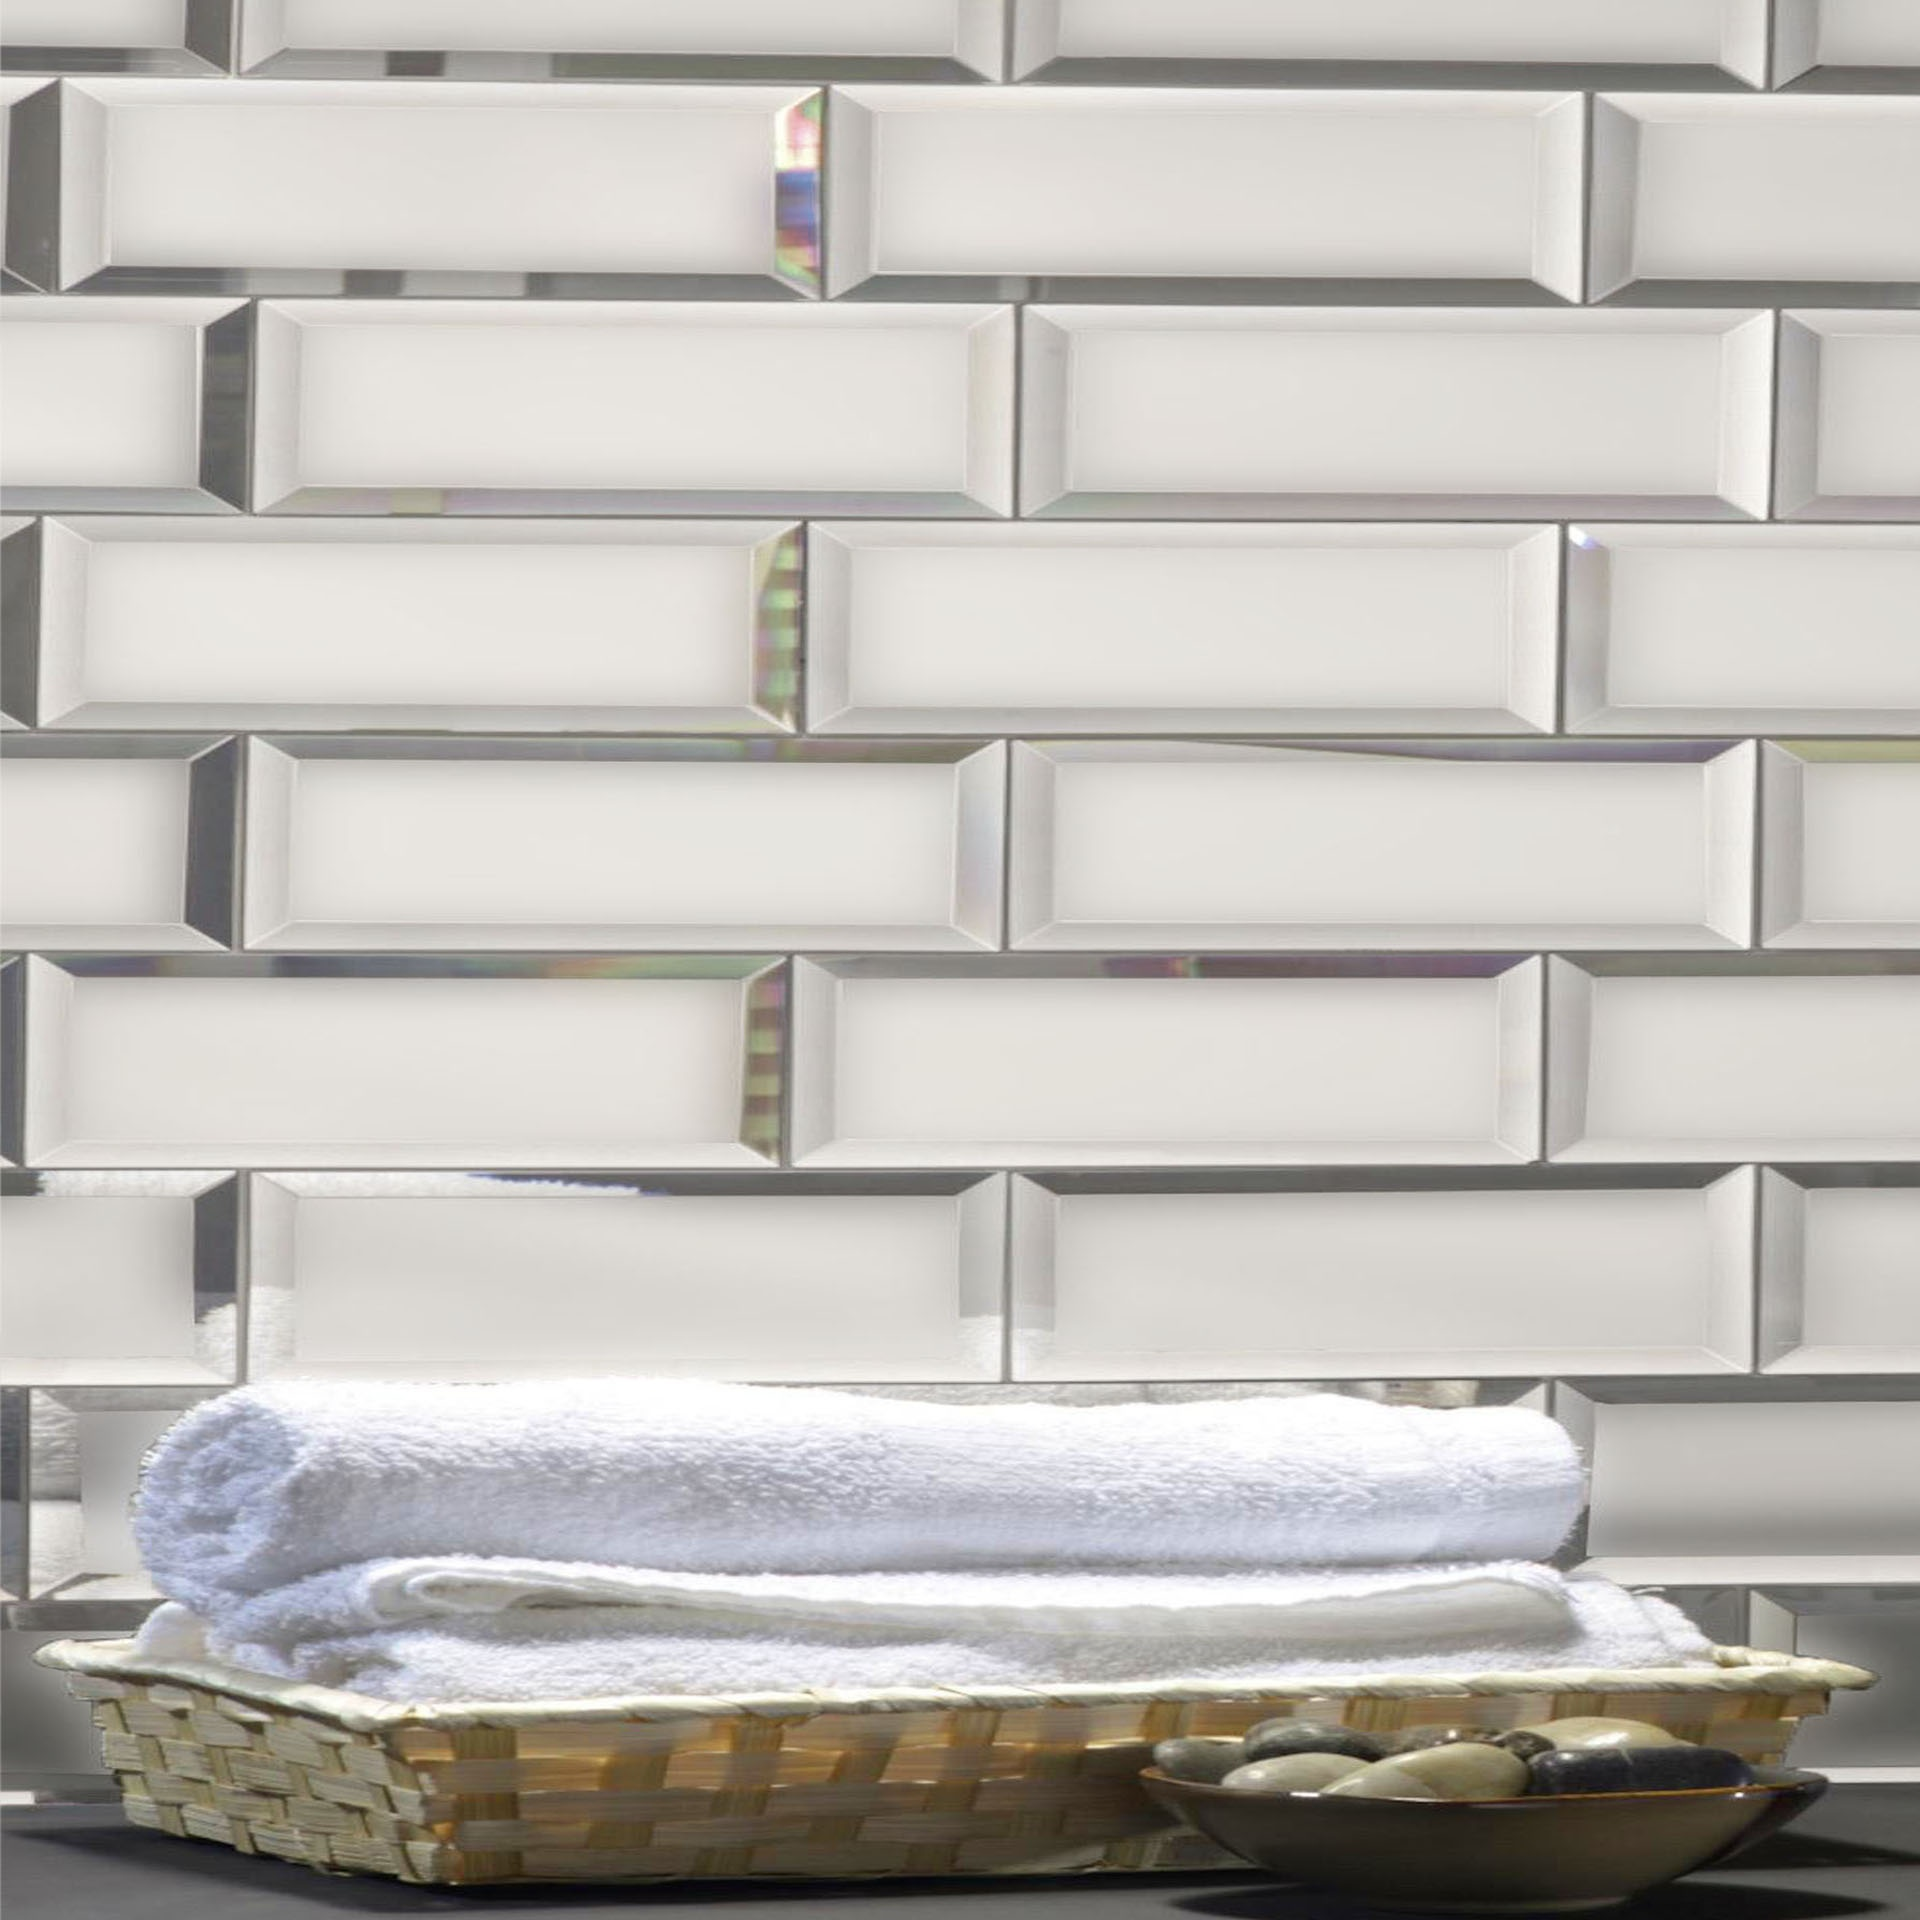 Reflections 3 in x 12 in Mirror Subway Tile in SILVER Matte